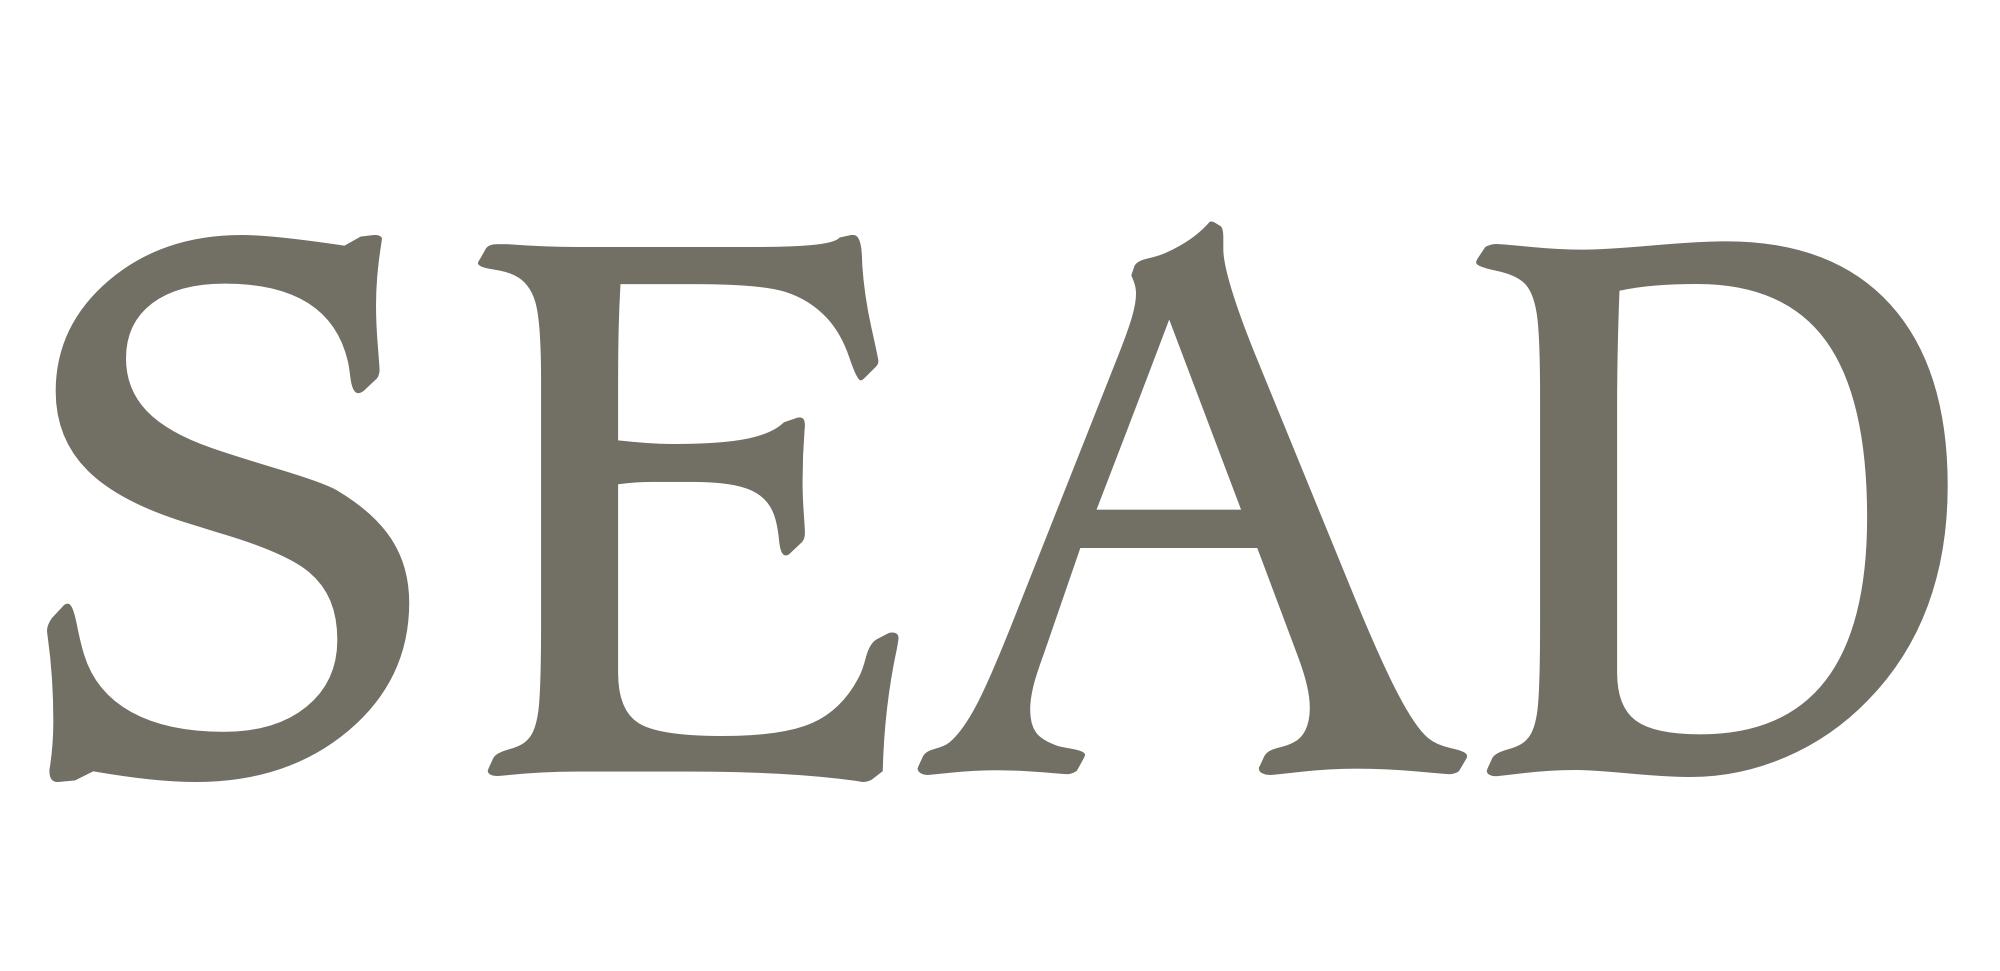 Sead - Name's Meaning of Sead